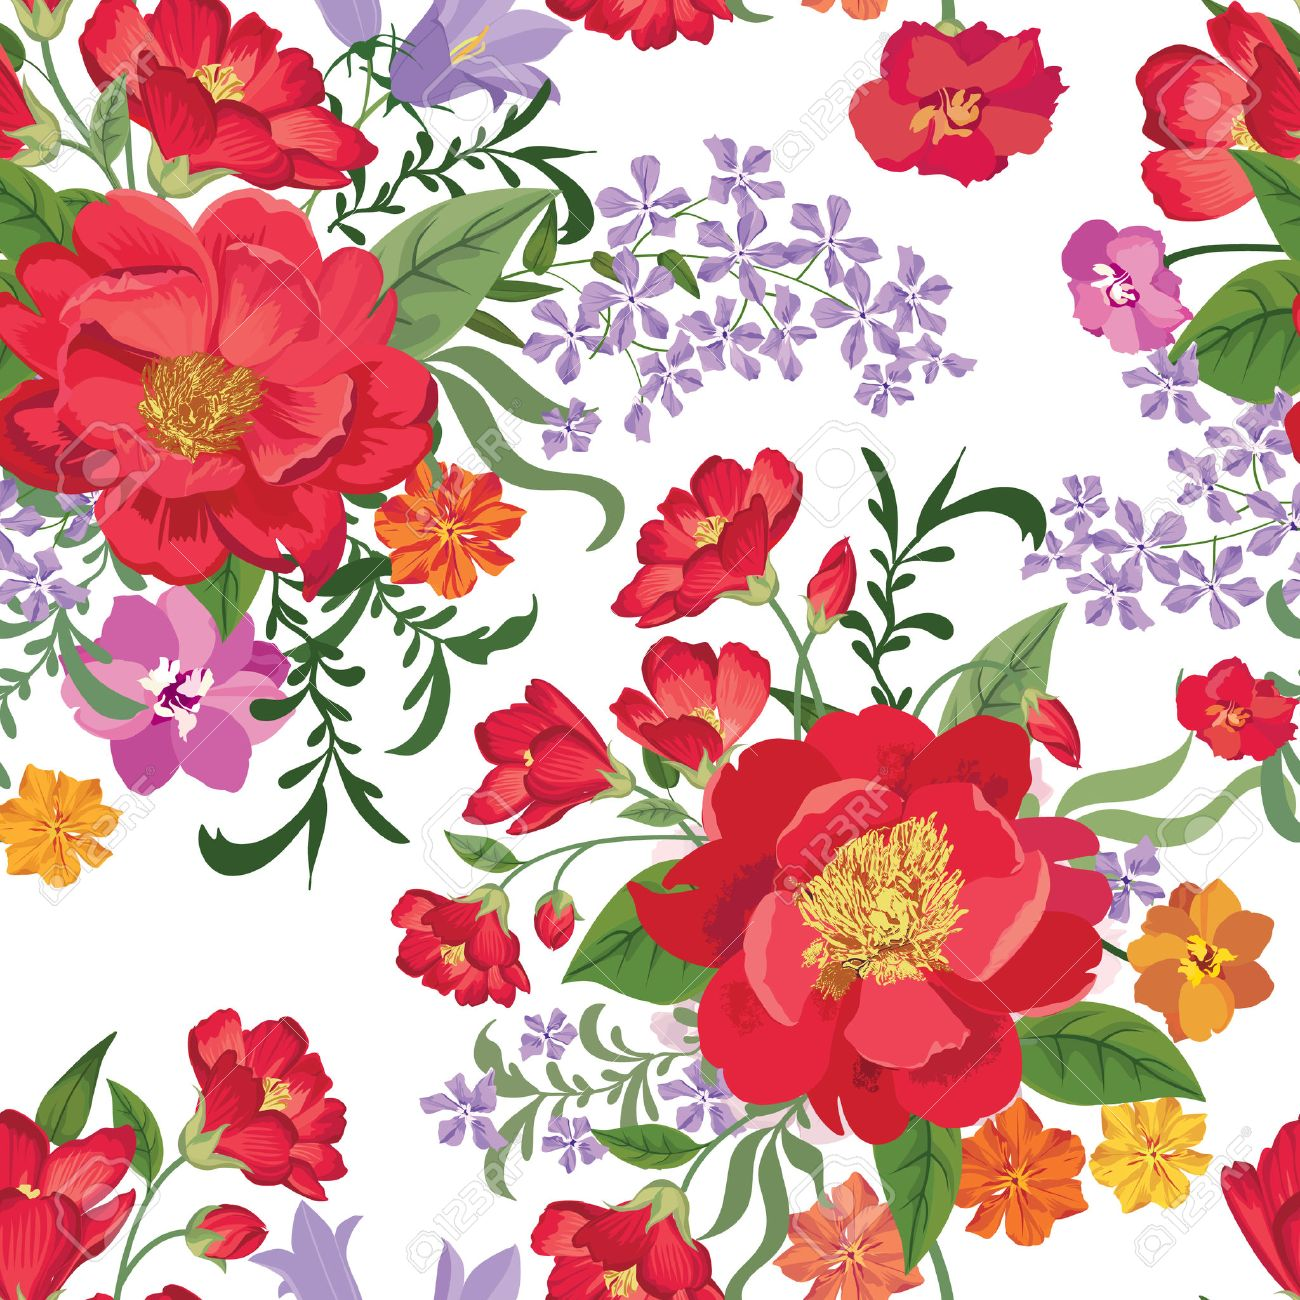 Floral seamless pattern. Flower background. Floral tile spring texture with flowers. Spring flourish garden Stock Vector - 48447762